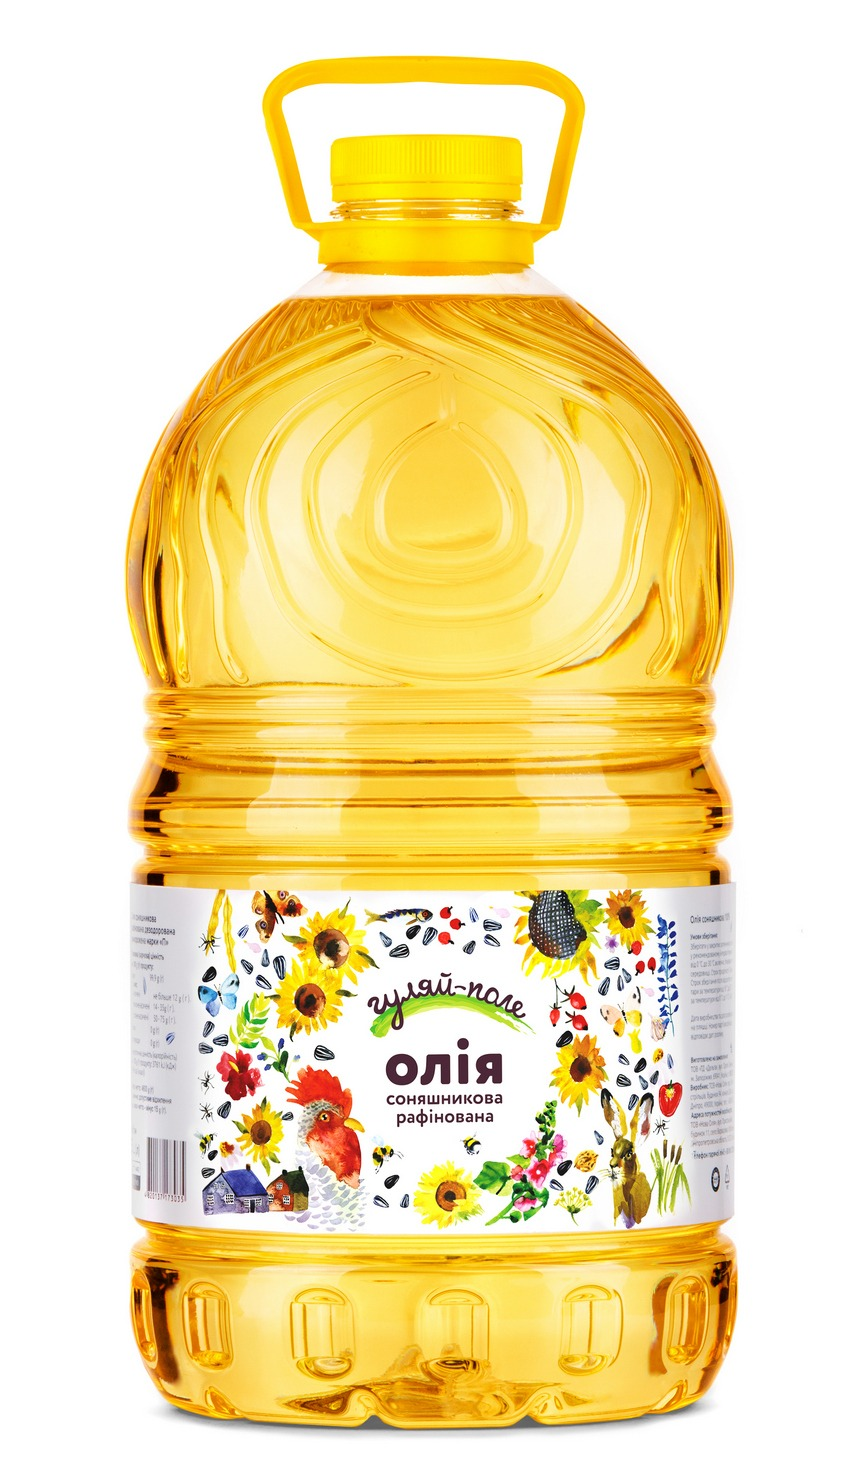 Sunflower oil refined deodorized  Гуляй-поле 5L 4600 g